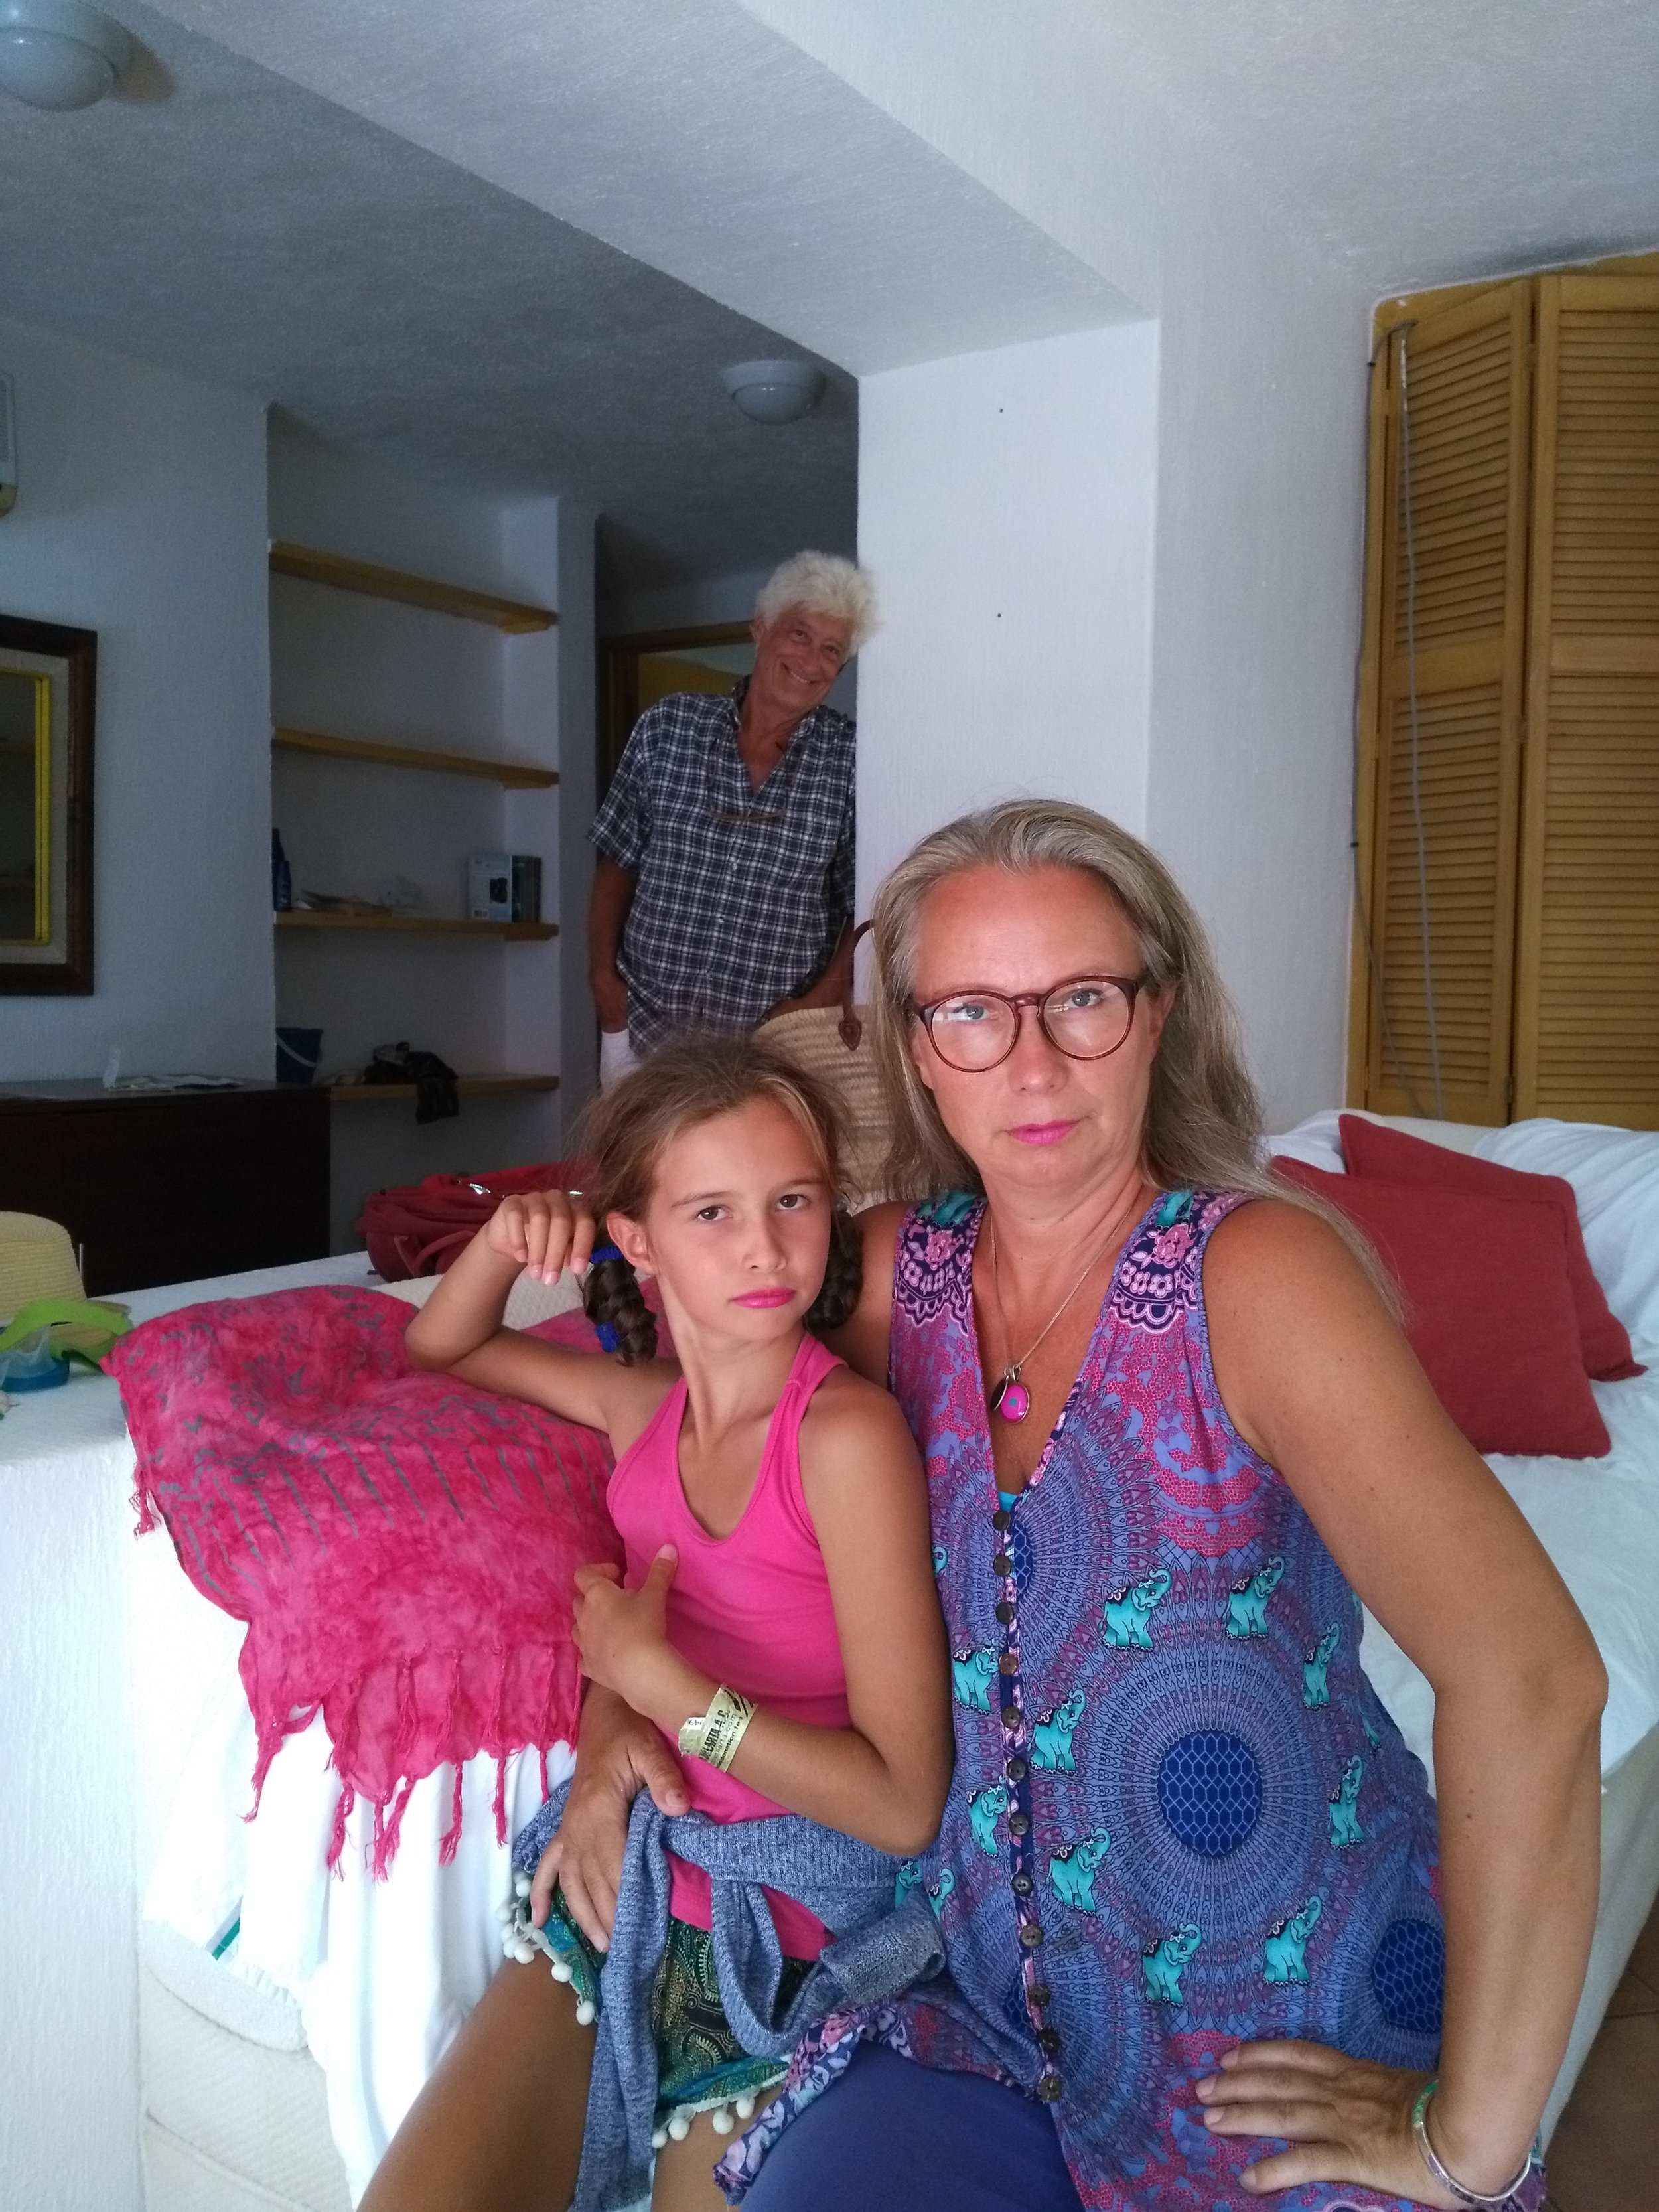 Getting ready to go out for Linda's last-night-in-Mexico dinner. You can see that both Lili and I have decided to accentuate our awesome tans with trendy and elegant pink lipstick.   (As an aside, my make-up department was rendered completely ineffective by the loss of my make-up bag somewhere on this trip. I think it was in Hong Kong but Dante thinks I left it in Vietnam. Who knows? Either way, the consequence was that I had no make up of any kind, at all, and that of course is a no go for any attractive, modern, globe trotting mother-daughter duo n'est-ce-pas? So, I invested a few baht into hot pink lipstick in Thailand and also picked up a mascara at the local Seven-11 in Khao Lak. And we were back on the tracks, so to say.)  For those who are wondering about our relatively solemn looks in this photo, you should know that Lili instructed me to look into the camera with a sullen 'femme fatale' air. She said she wanted this photo to be like 'real models'. Dante did not get the memo on time I think.